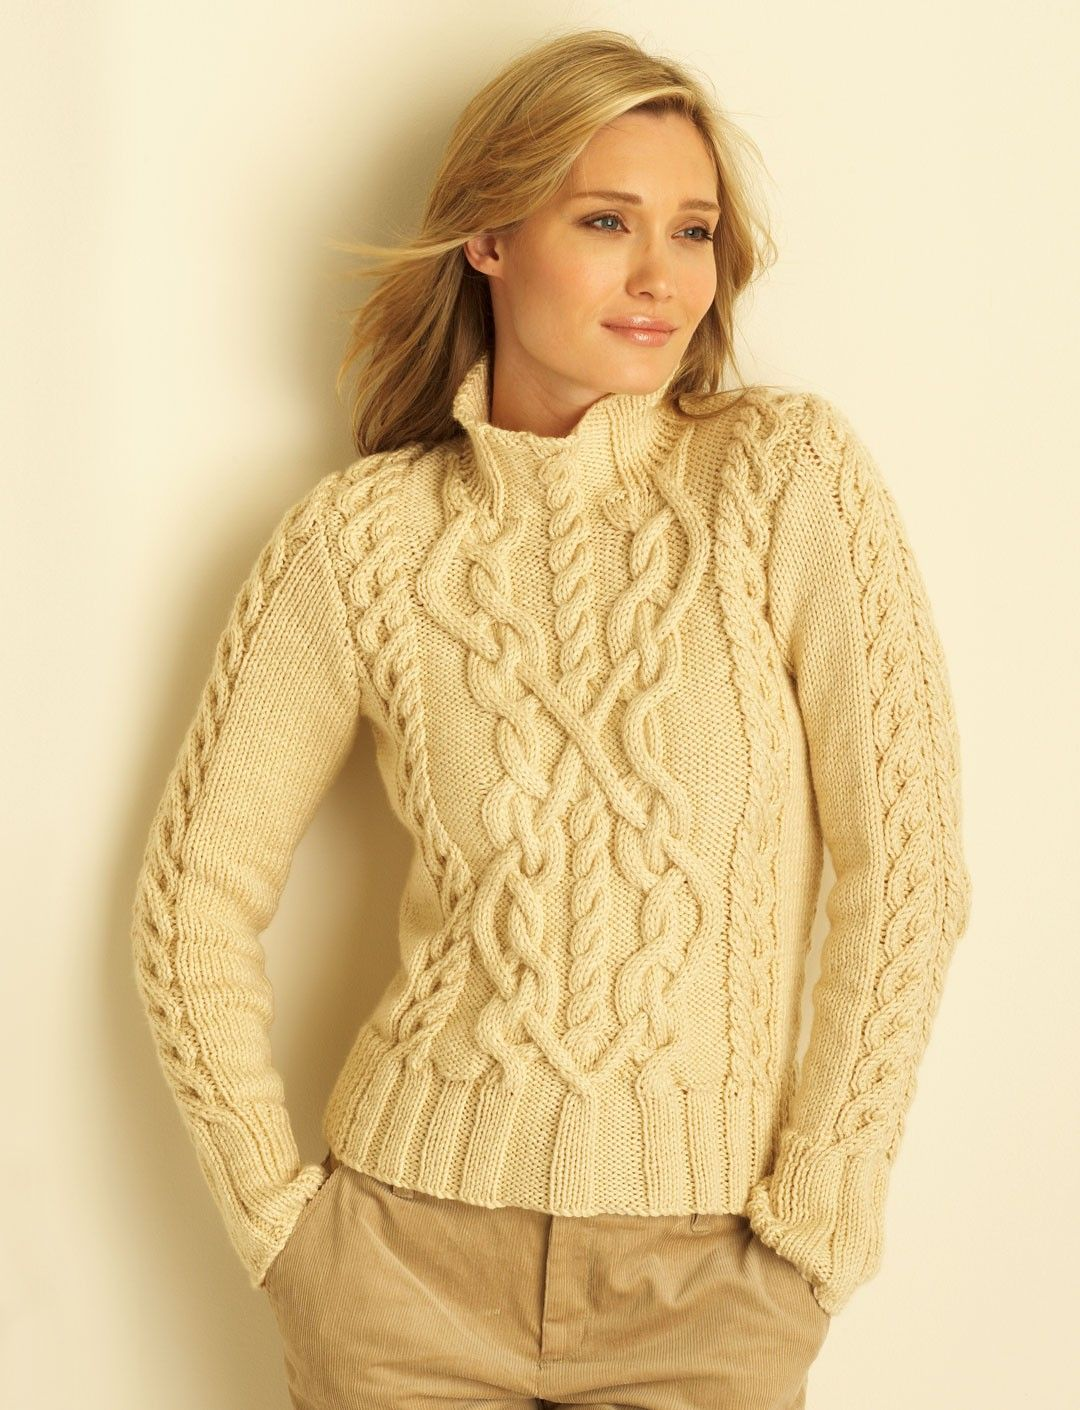 Knitting Patterns Sweater : Free pattern yarnspirations bernat cable sweater